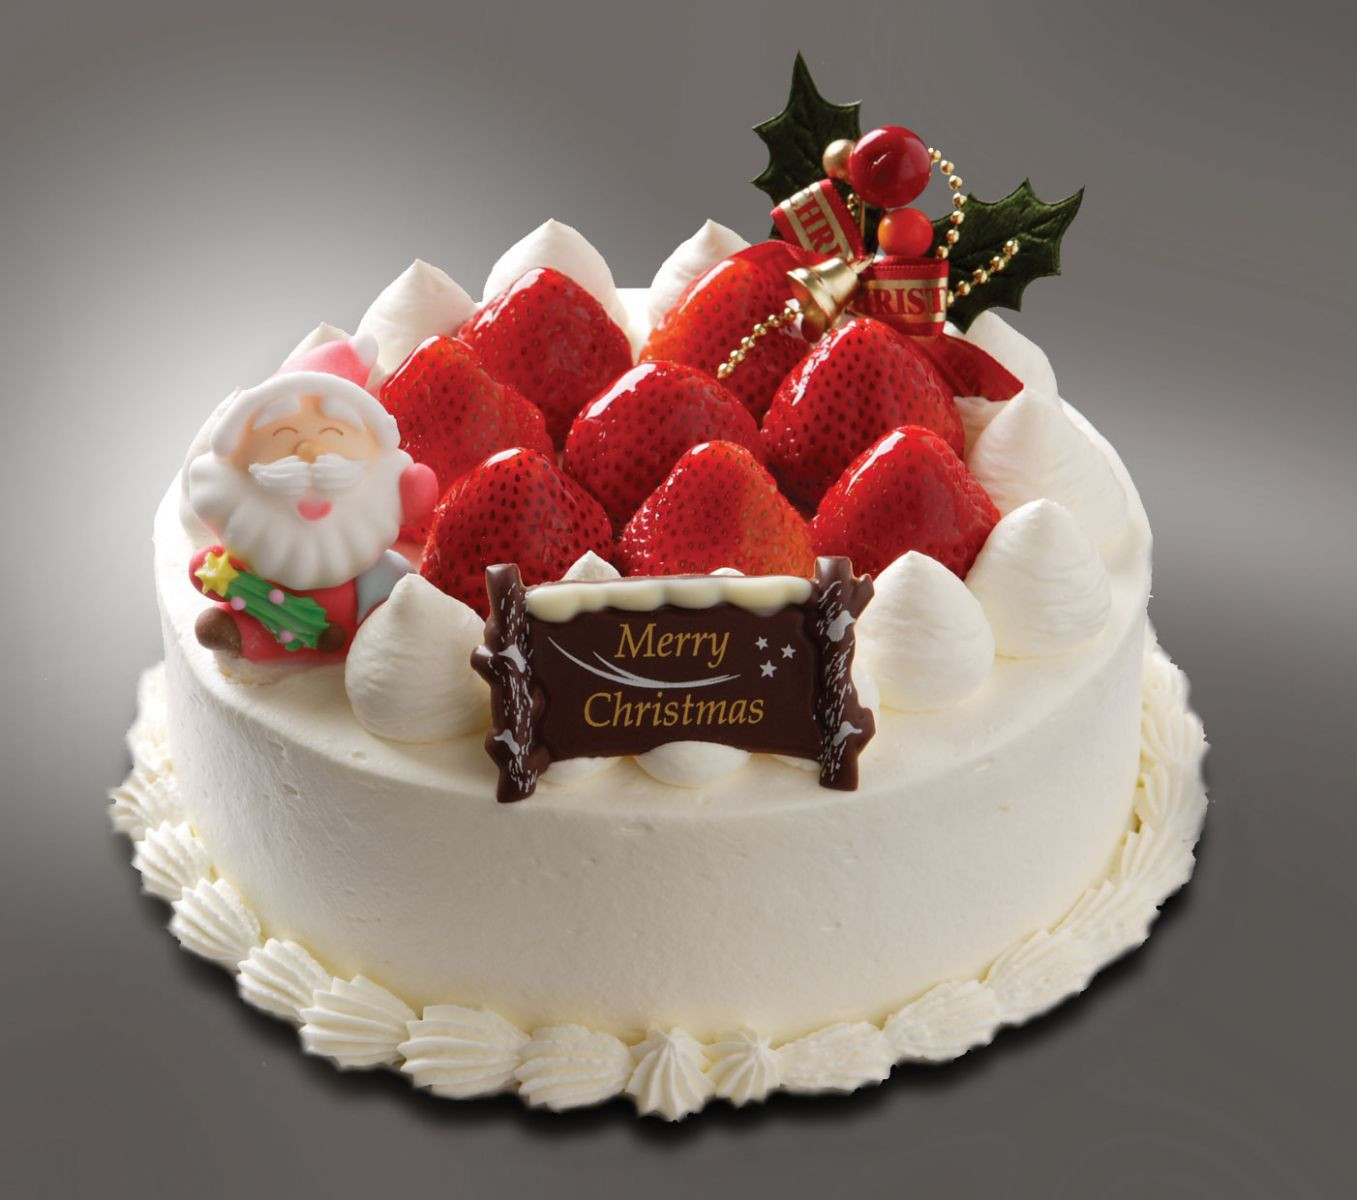 Christmas Eve Desserts  5 Popular Desserts For Christmas Eve by nithya